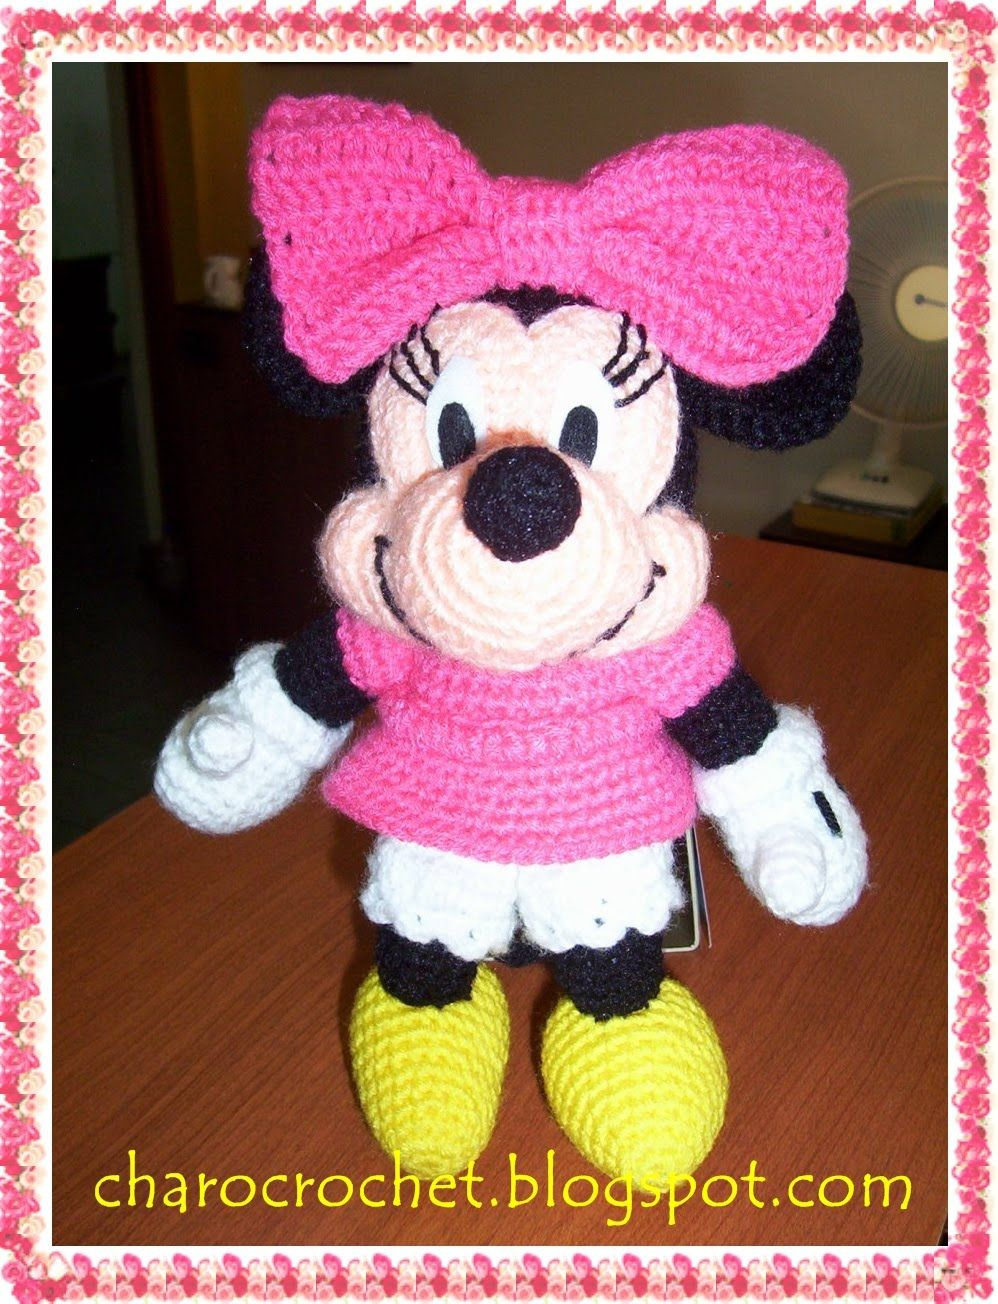 Charocrochet patrones minnie mouse ideias pinterest charocrochet patrones minnie mouse bankloansurffo Choice Image